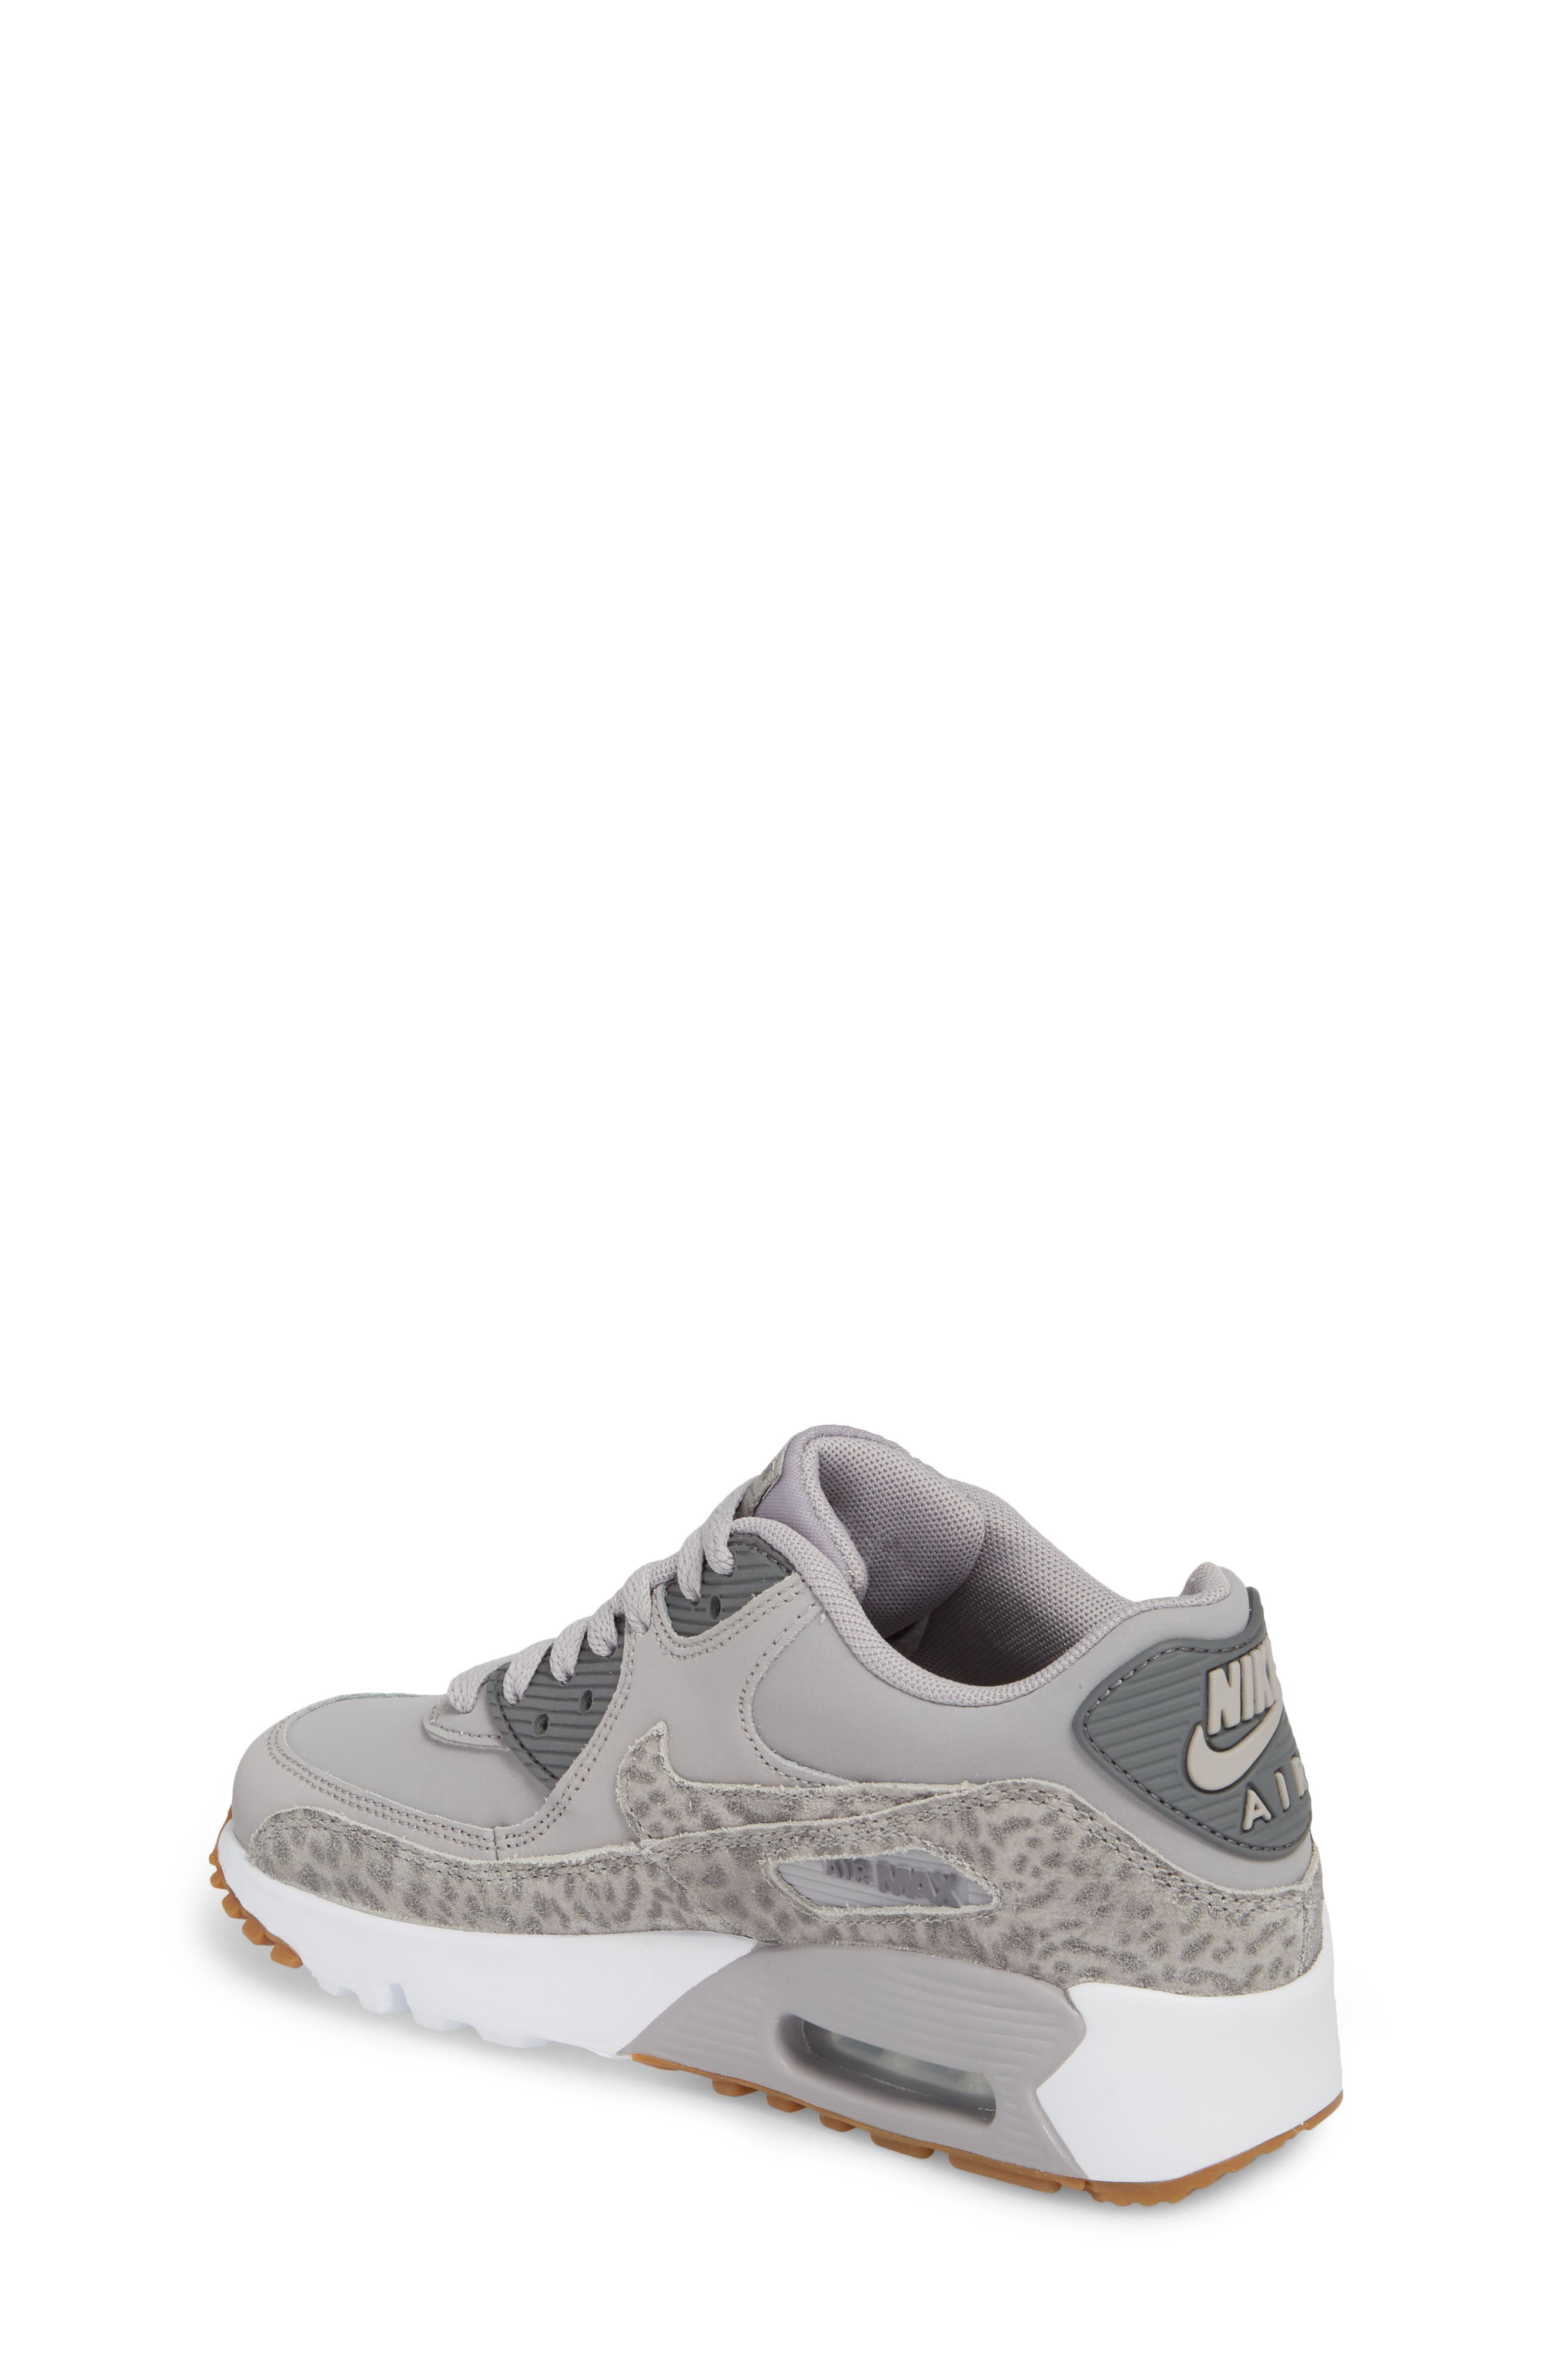 Air Max 90 Leather Sneaker,                             Alternate thumbnail 2, color,                             Atmosphere Grey/ Smoke/ White